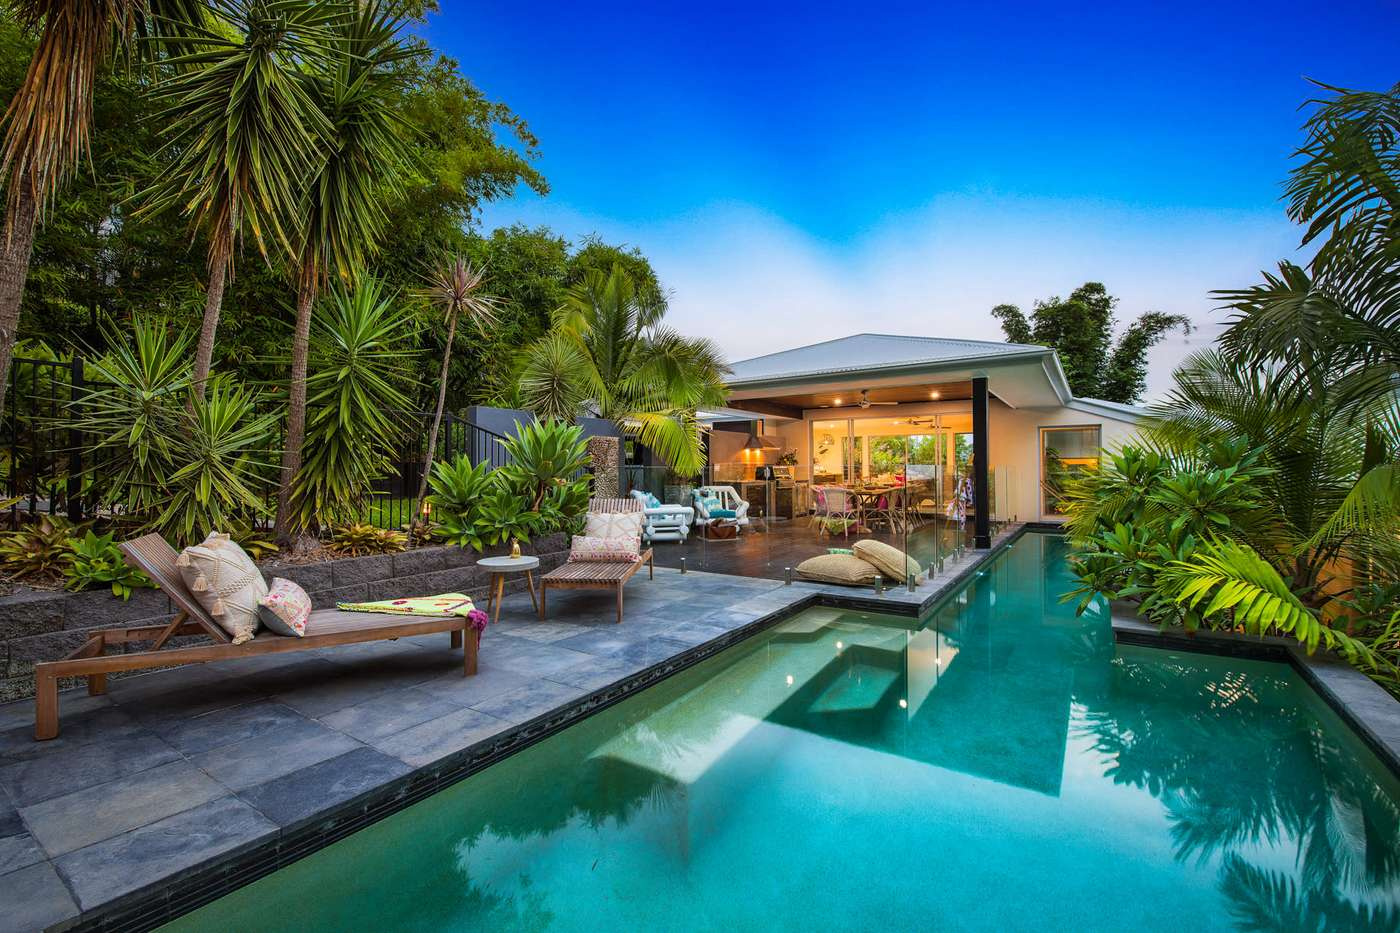 Main view of Homely house listing, 16 Warrener Place, Maroochy River, QLD 4561